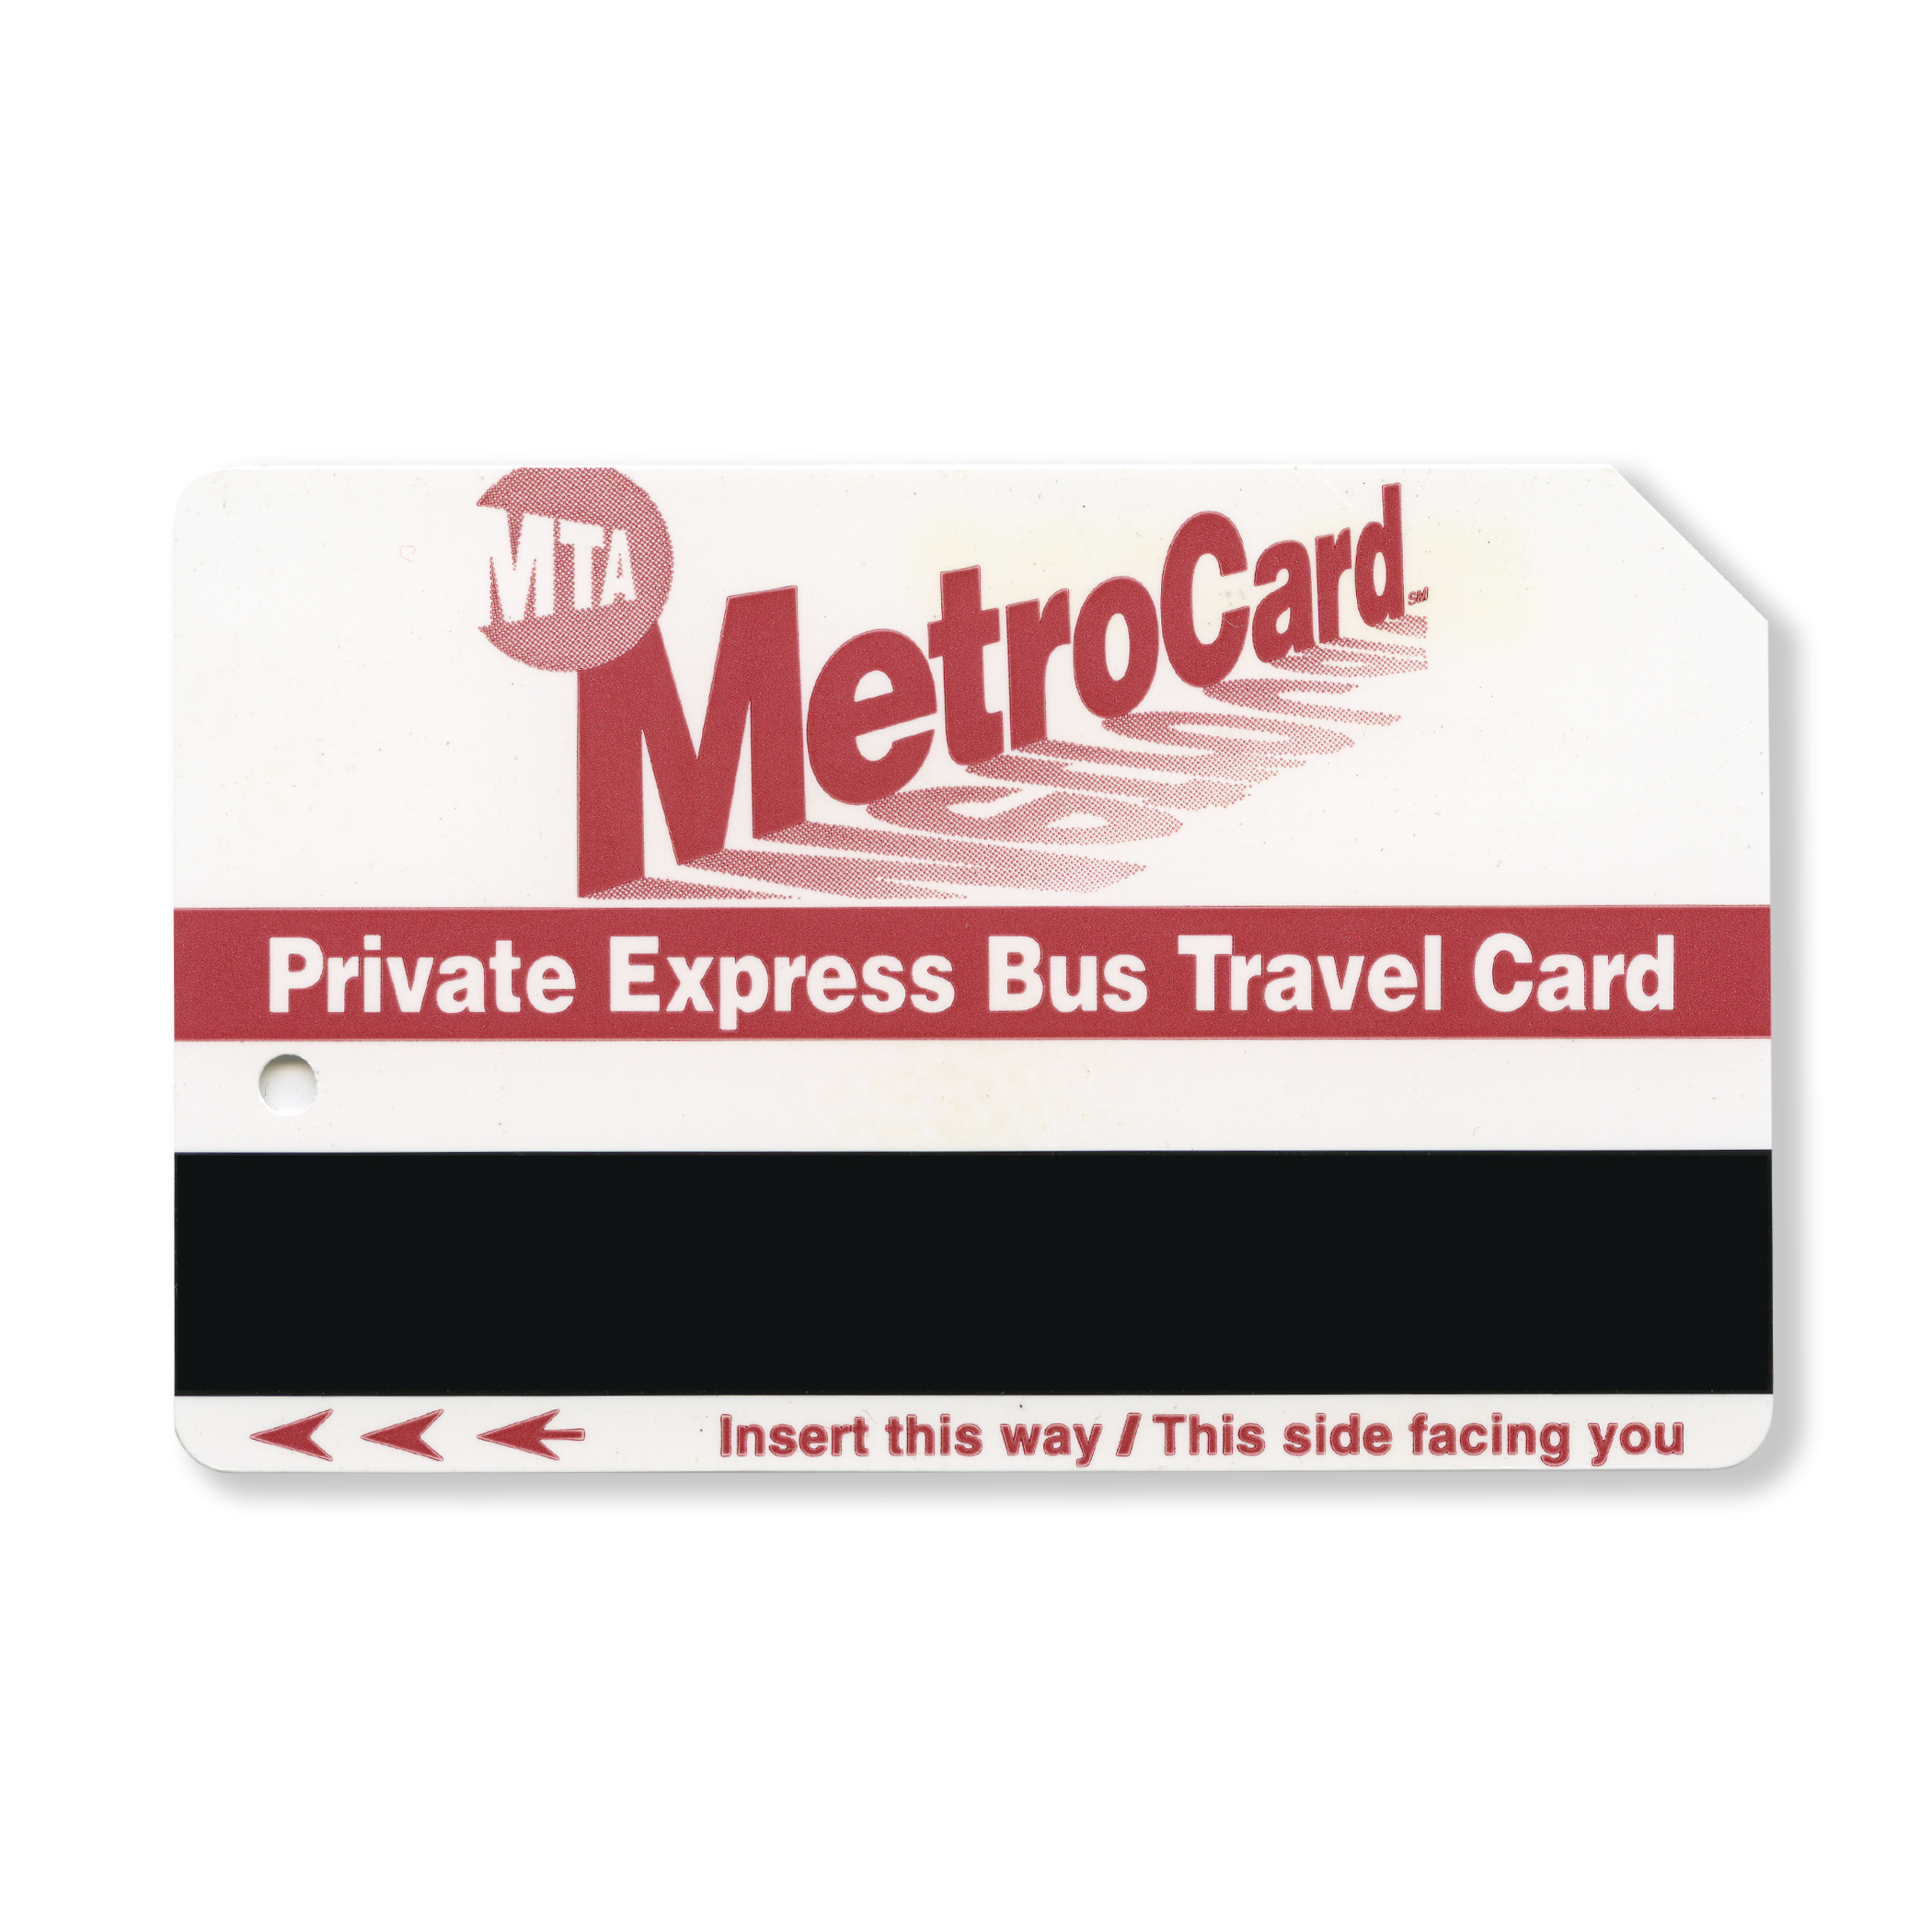 the_nycta_project_1997_private_express_bus_travel_metrocard.jpg